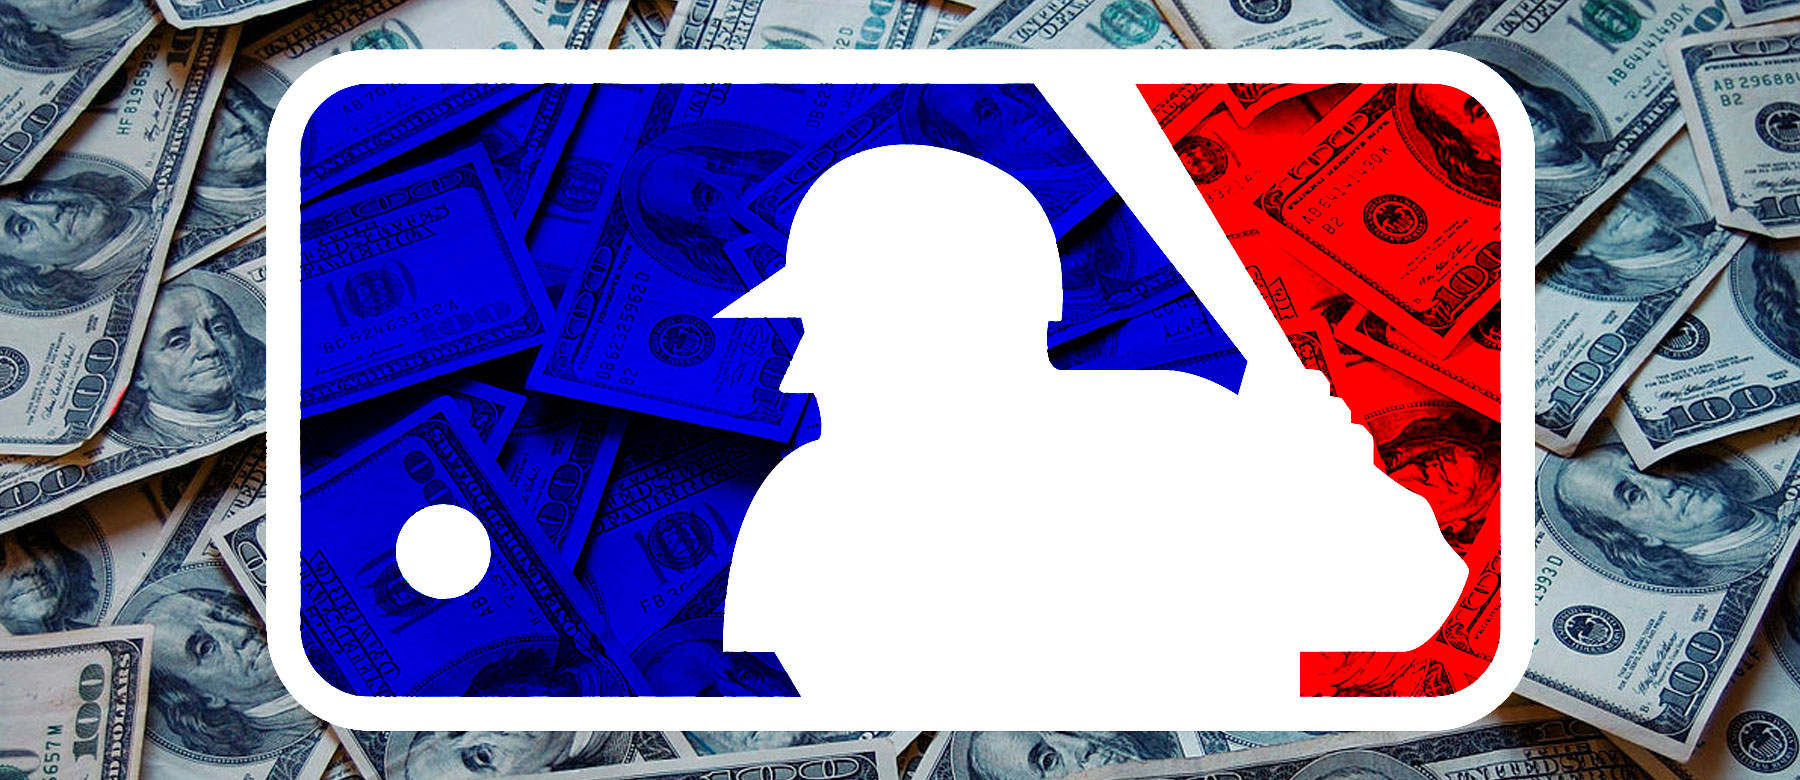 Rob Manfred claims MLB would lose $4B if no season is played